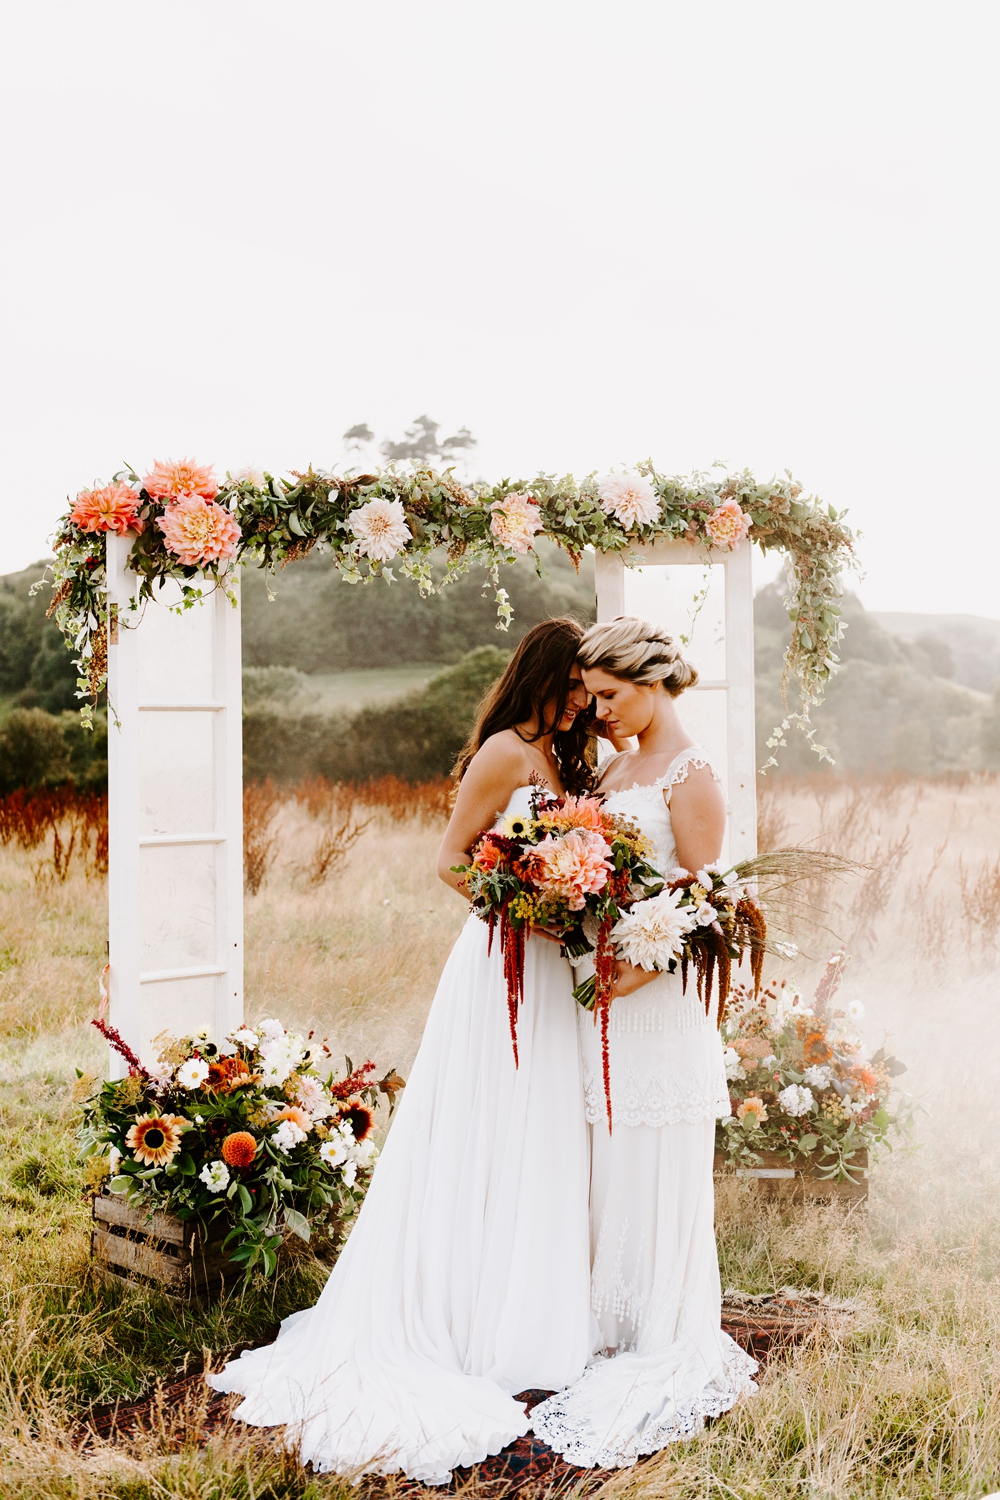 Ethical Wedding Ideas Sadie Osborne Photography Flower Arch Backdrop Doors Glass Antique Ceremony Aisle